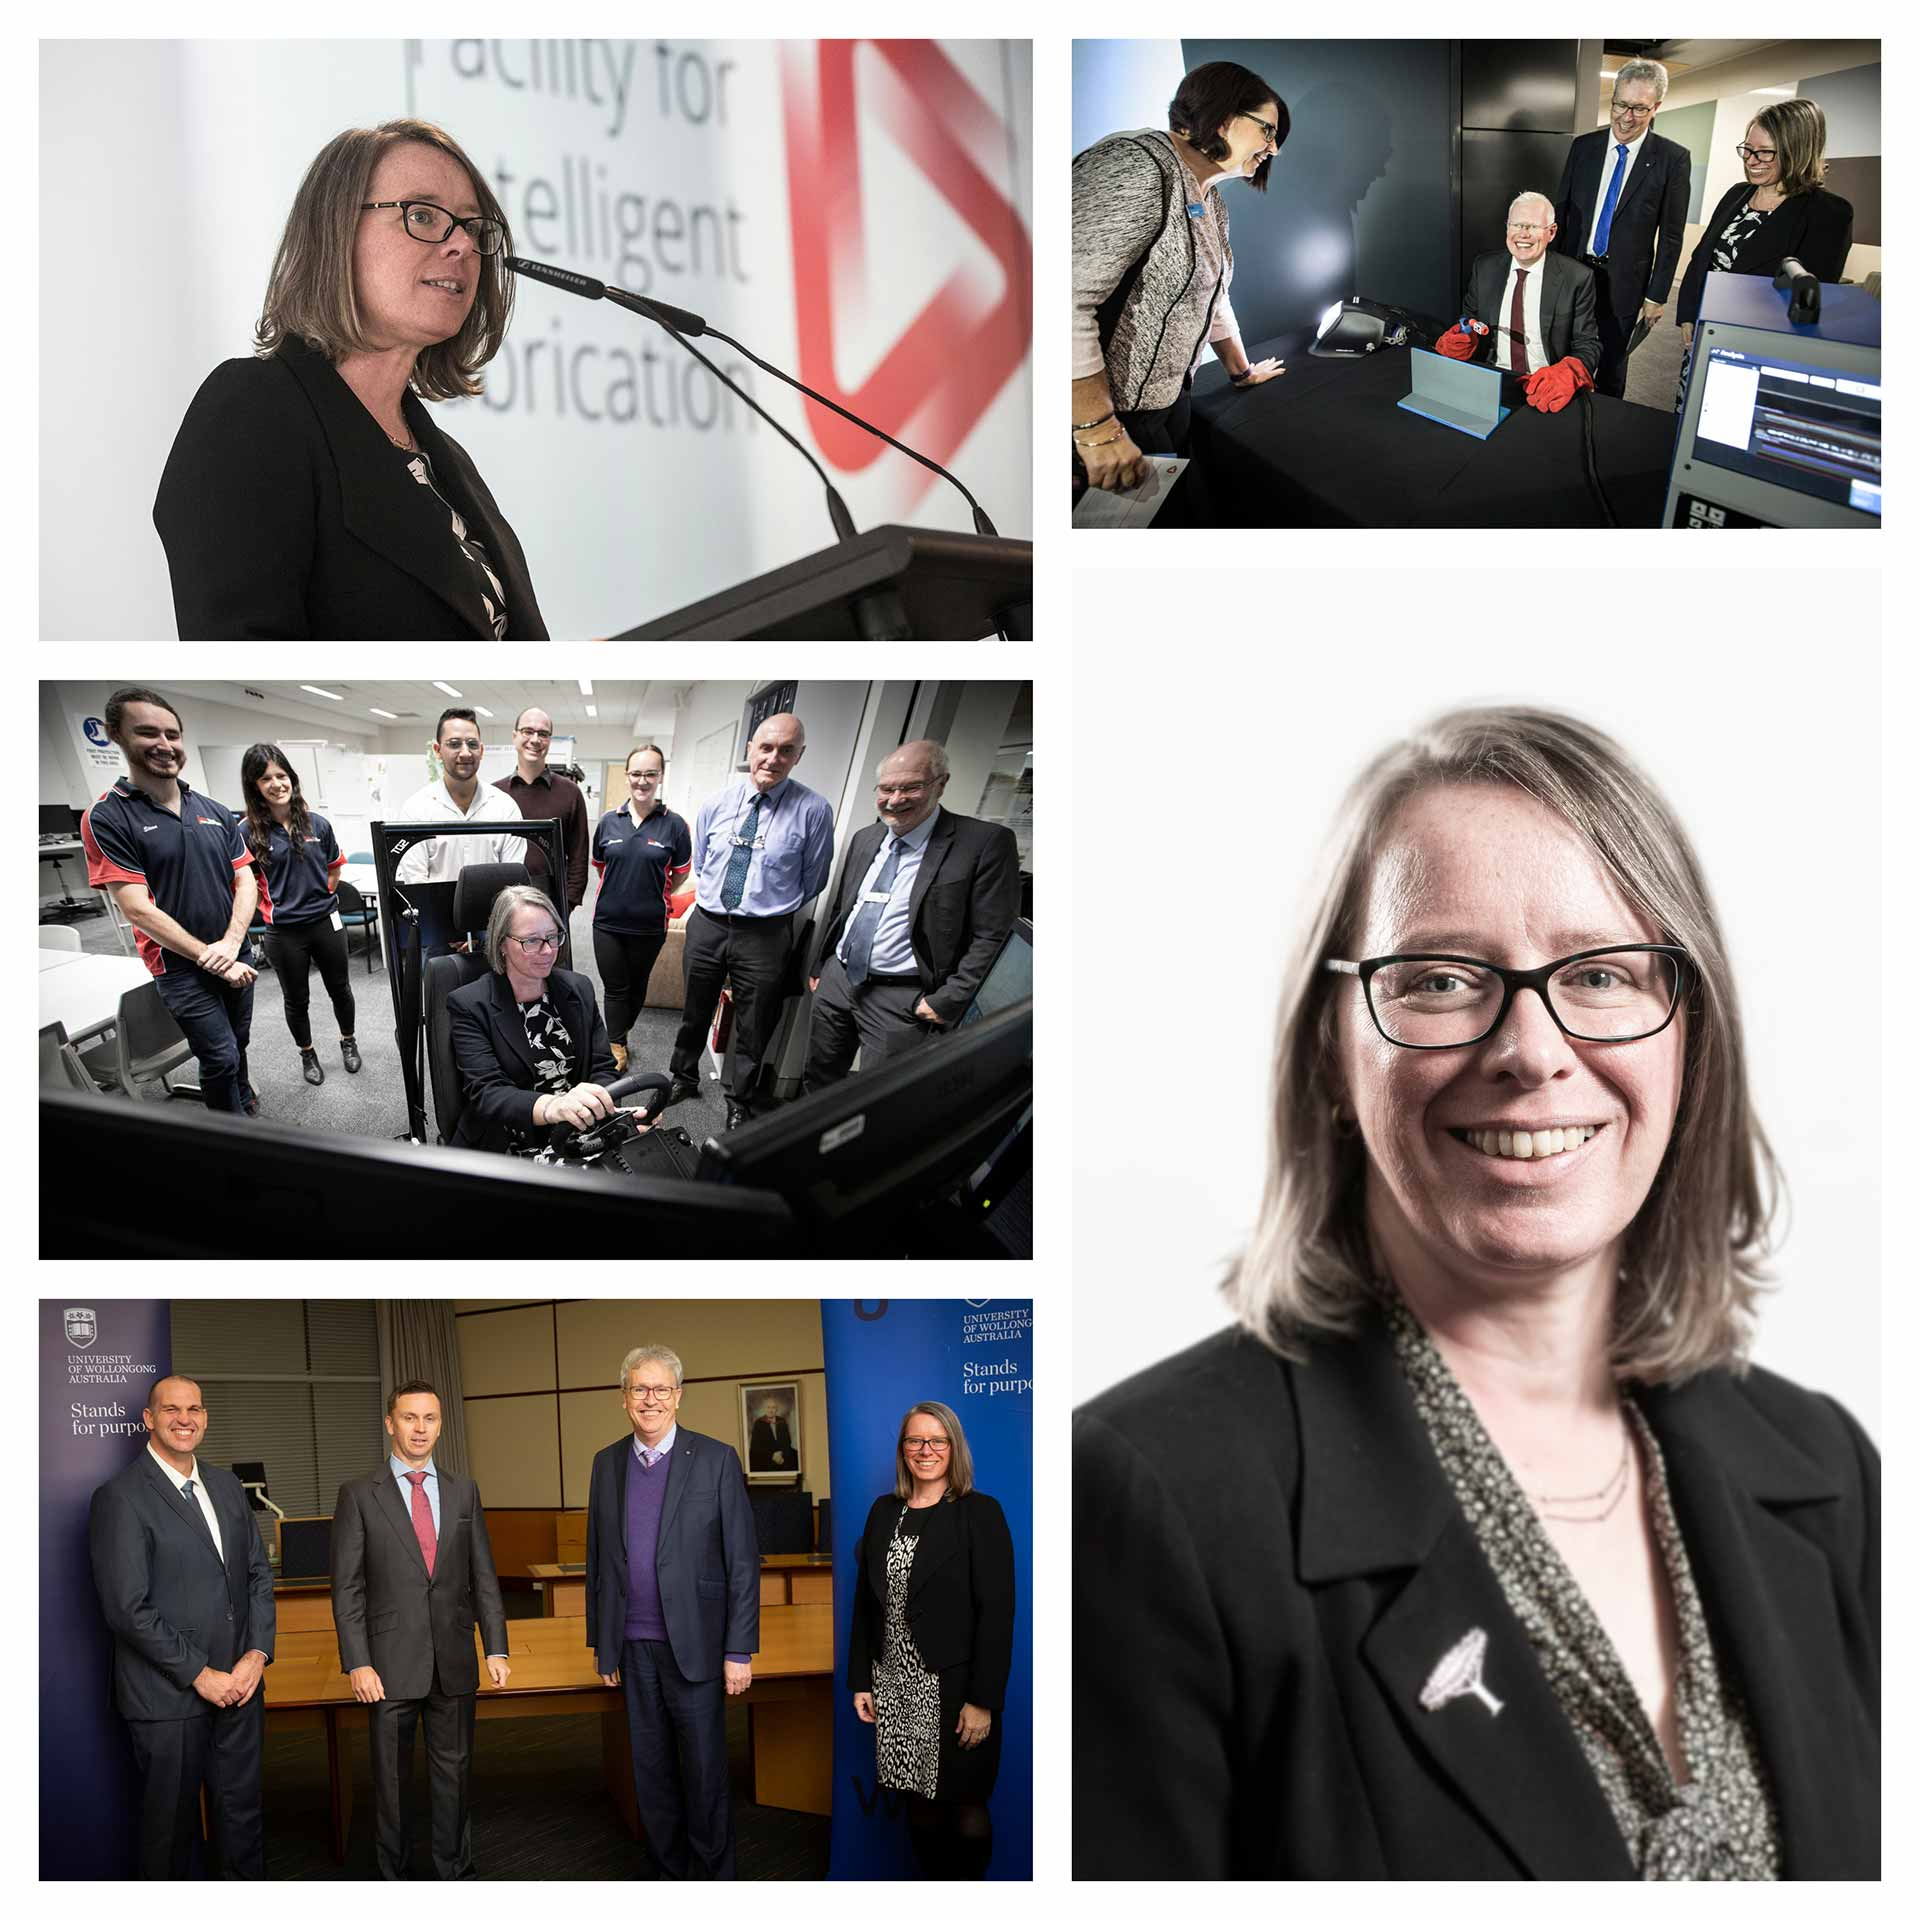 Collage of images of Professor Valerie Linton